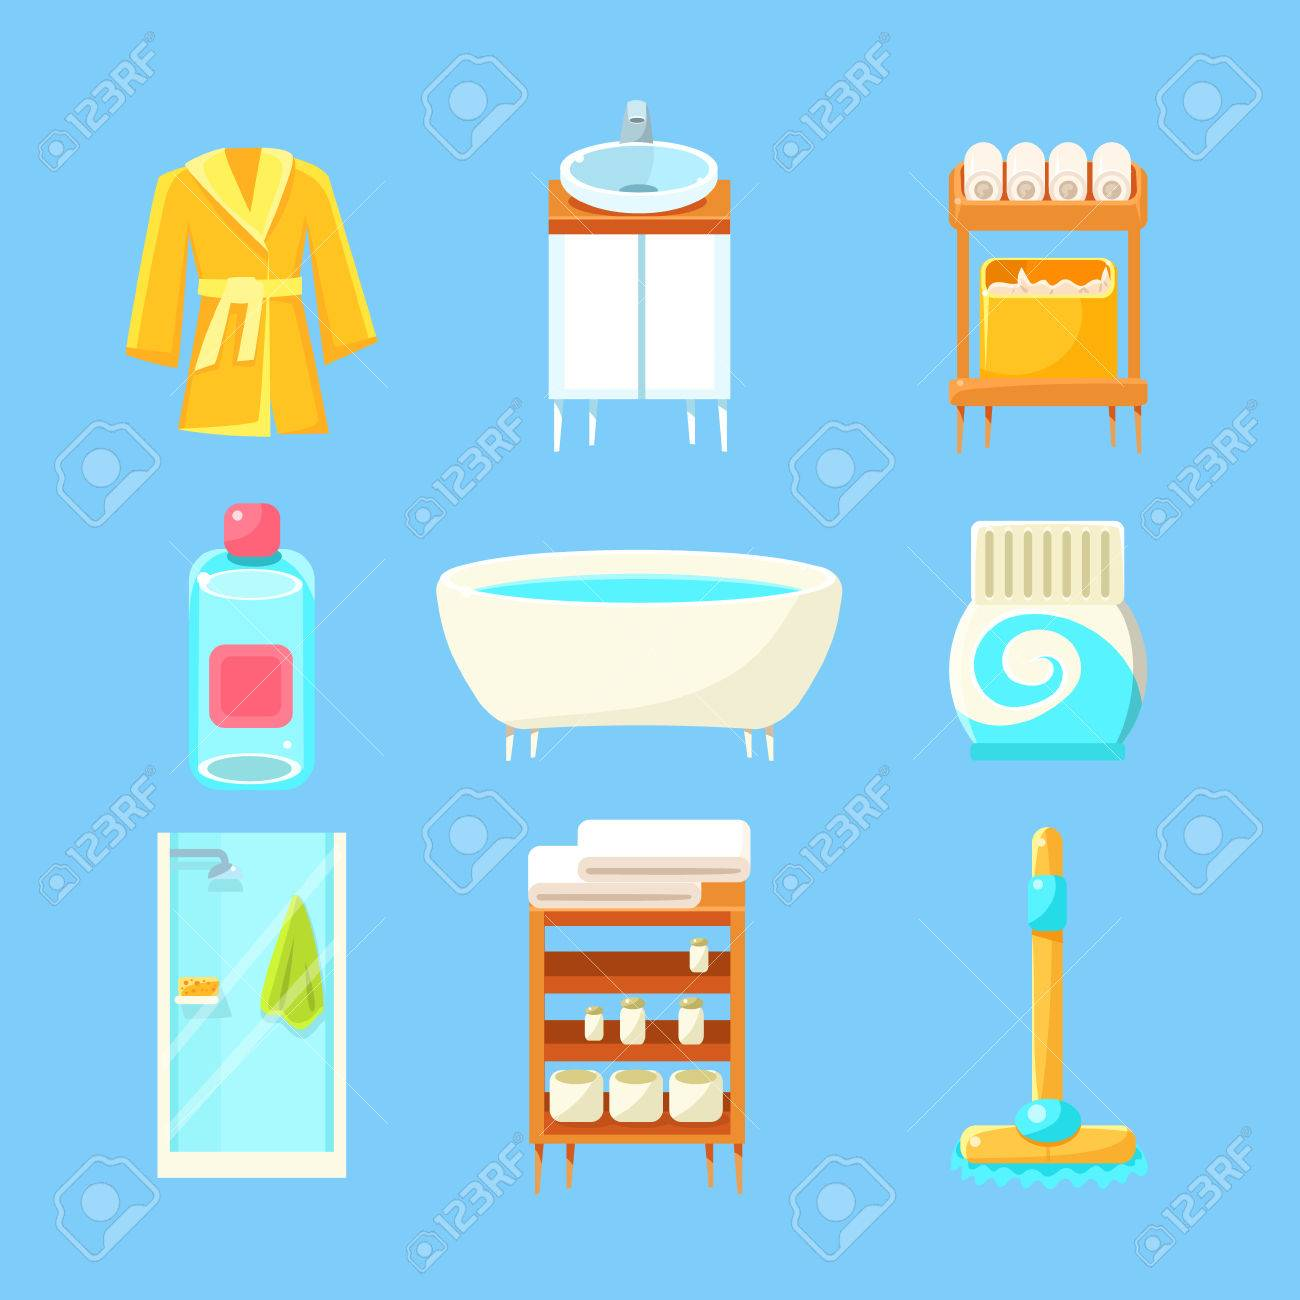 Bathroom Things Set Of Flat Isolated Vector Simplified Bright Color Design  Icons On Blue Background Stock